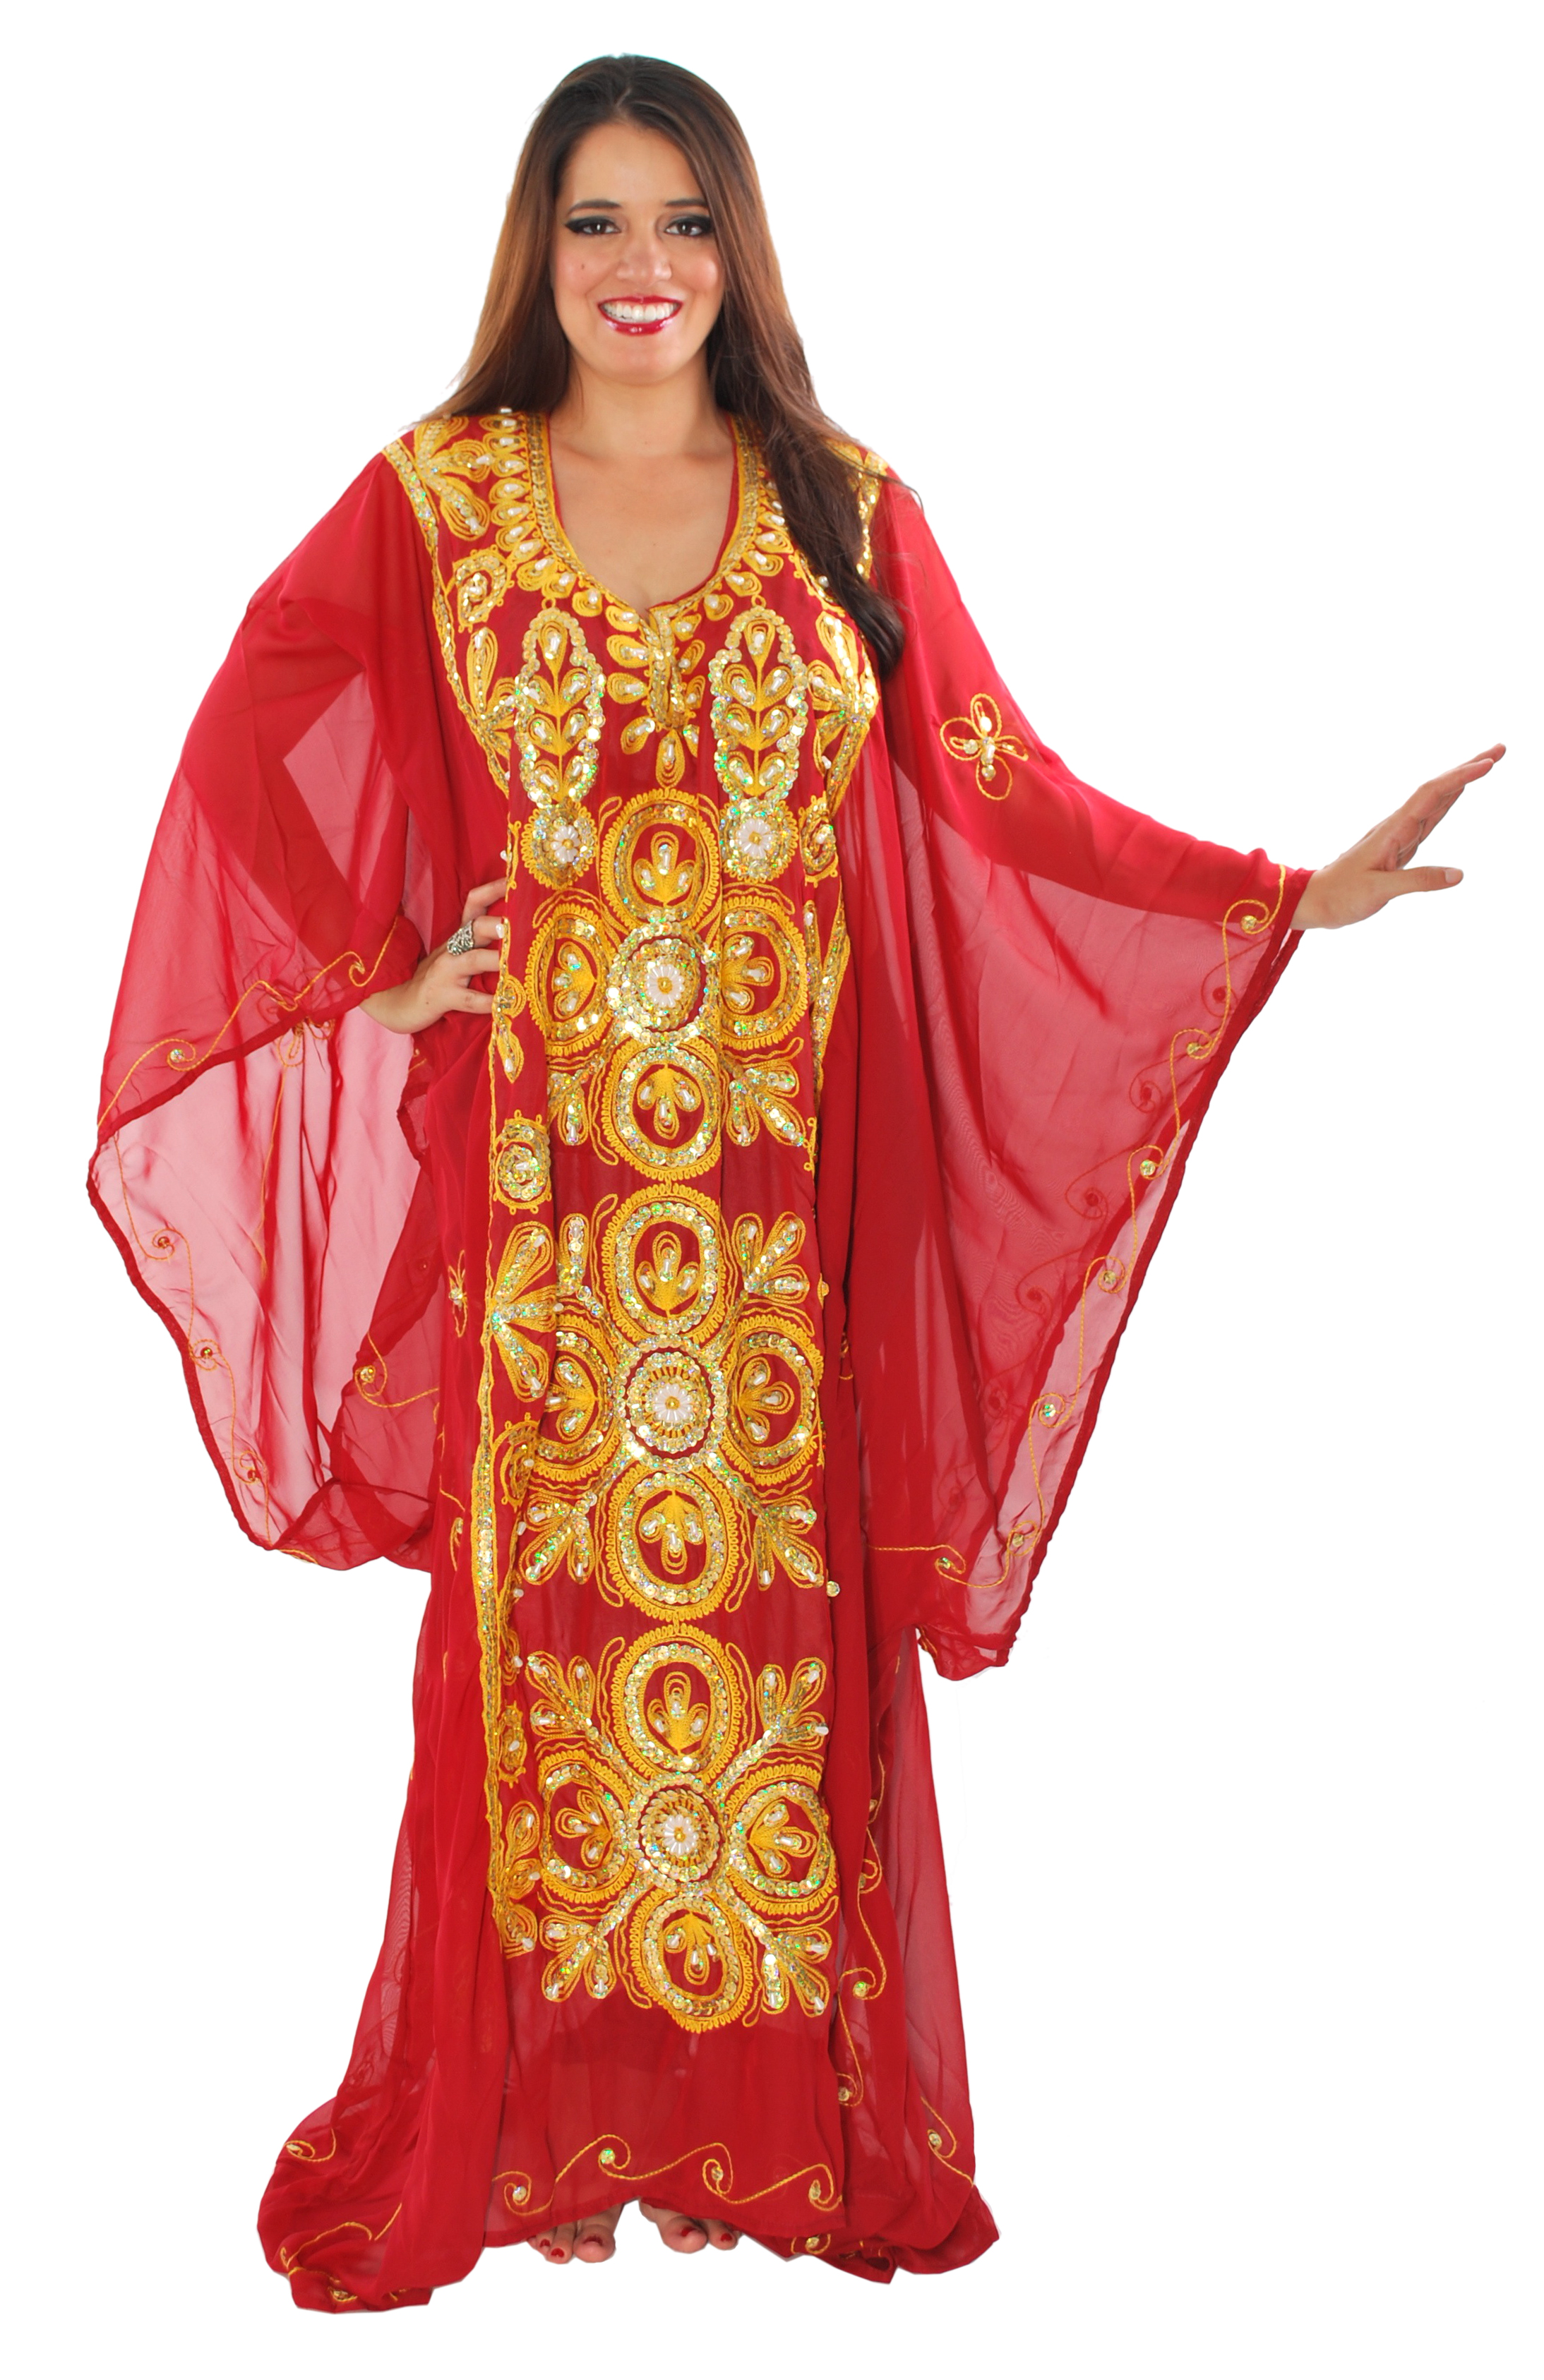 CAIRO COLLECTION: Traditional Khaleeji Thobe Dress - BURGUNDY / GOLD